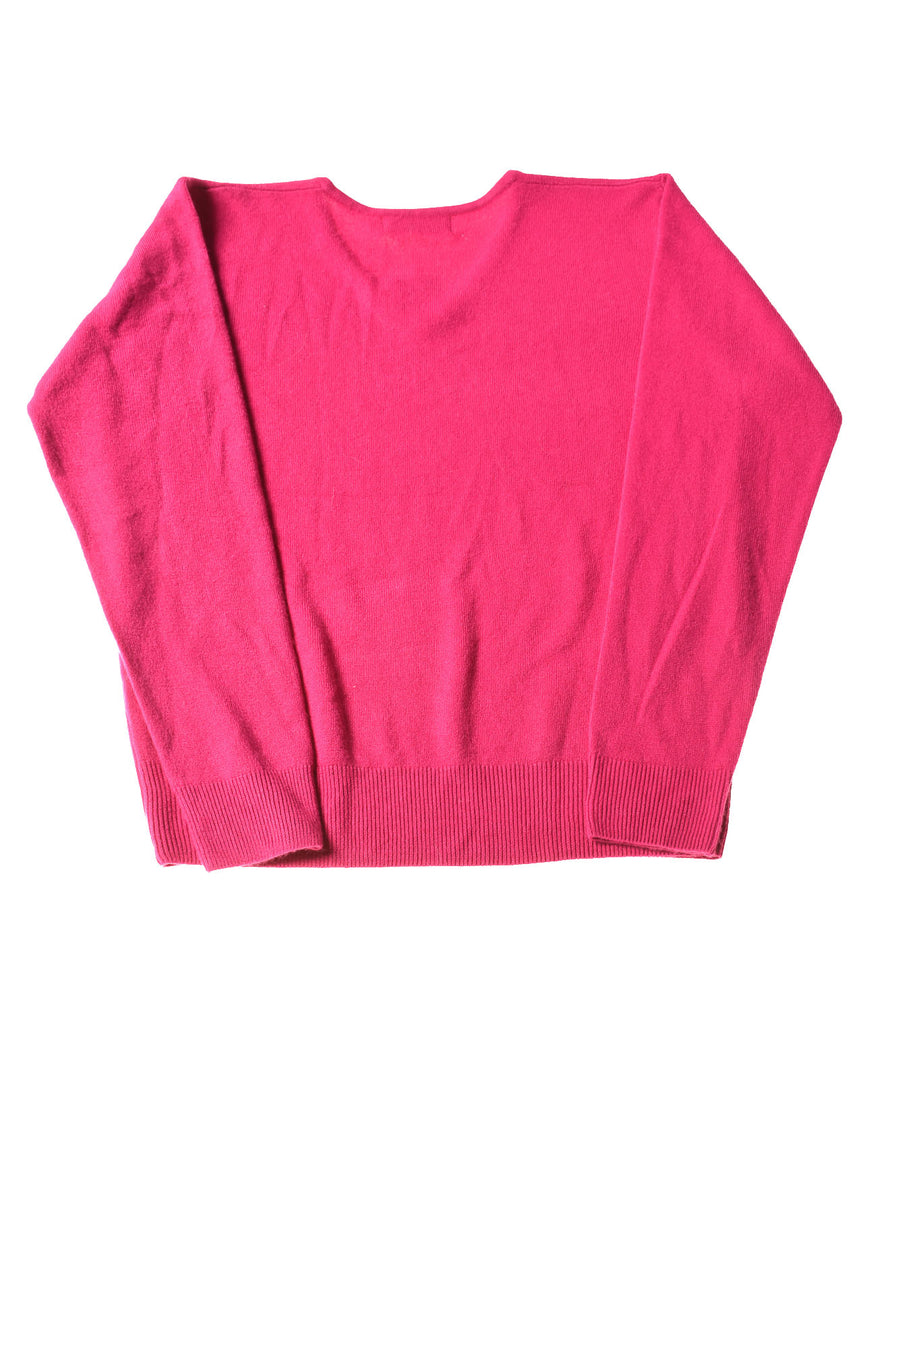 Women's Sweater By Cashmere